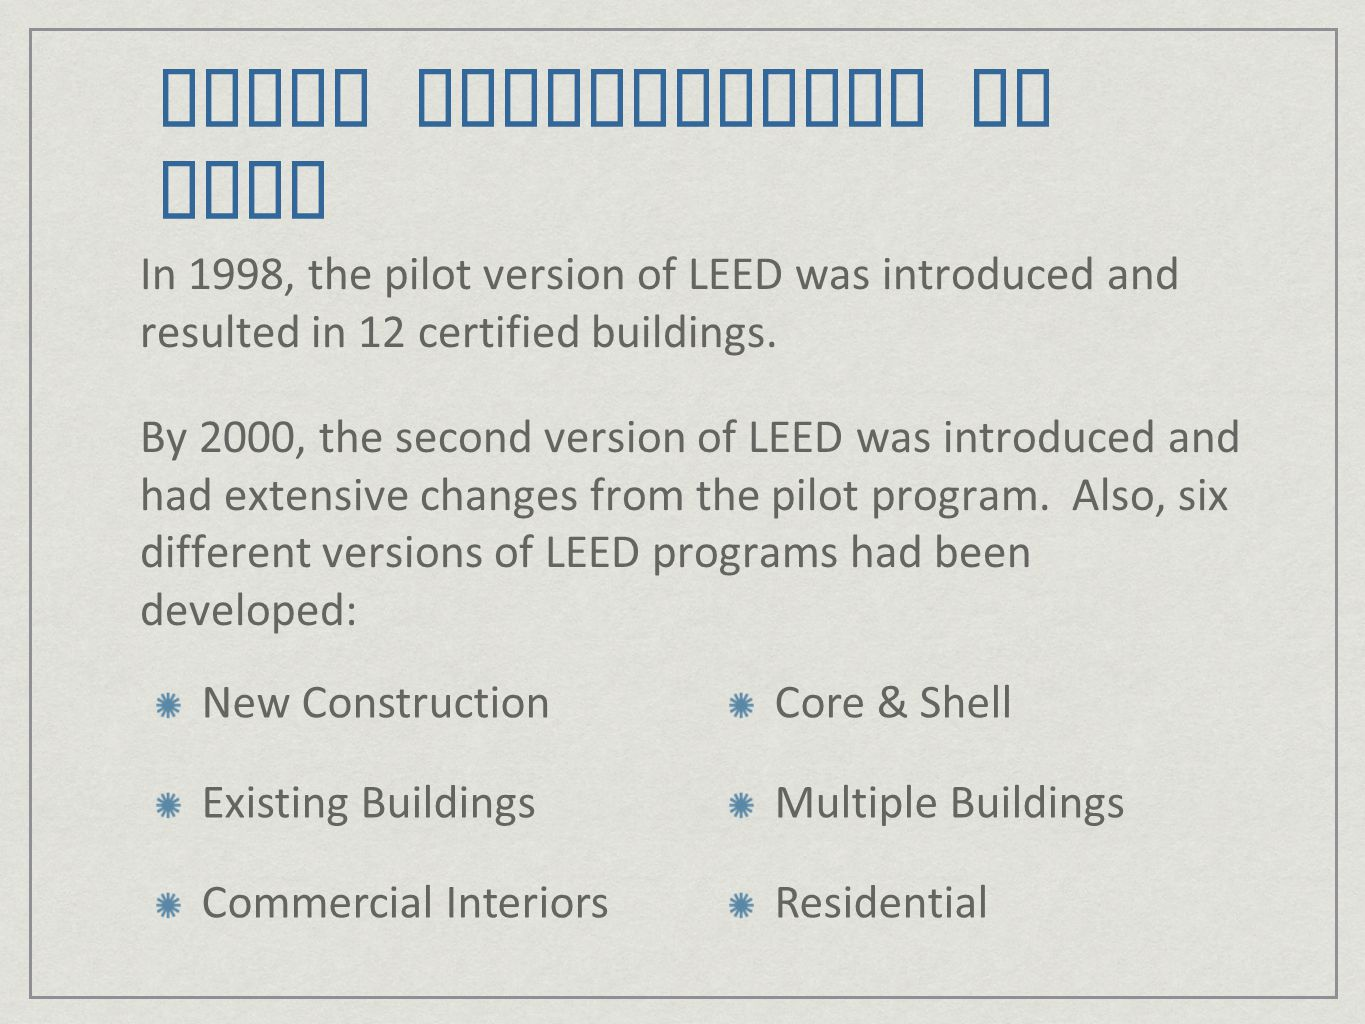 LEED v 2: Points & Numbers Certification under LEED v2 required a building to earn certain levels of points: Certified: 26-32 points Silver: 33-38 points Gold: 39-51 points Platinum: 52-69 points